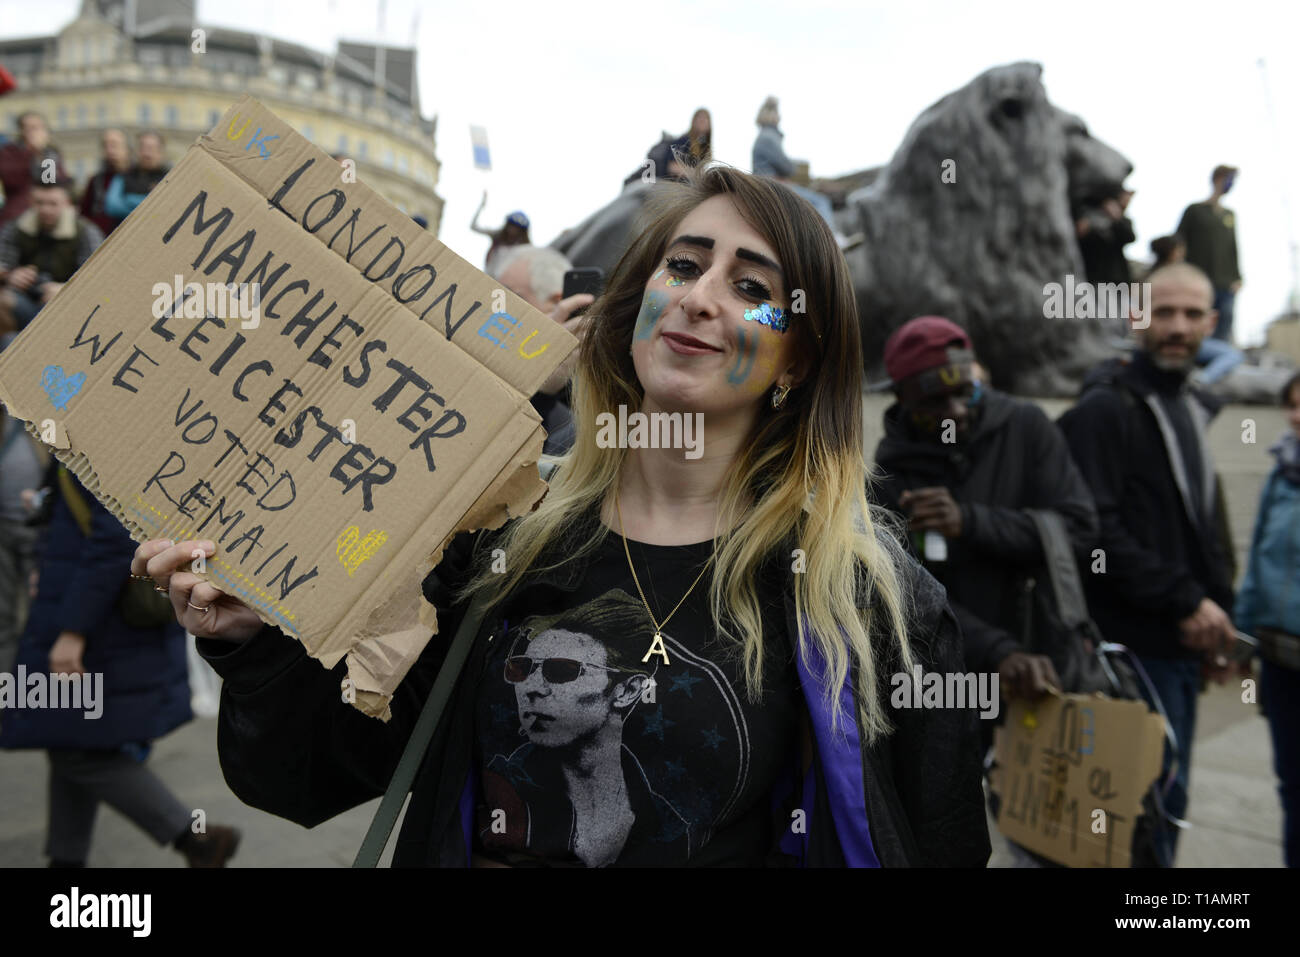 London, Greater London, UK. 23rd Mar, 2019. A protester seen holding a placard that says 'Manchester, Leicester we voted remain'' during the protest.Over a million people marched peacefully in central London in favor of a second referendum. People gathered at Park Lane to rally at Parliament Square to demonstrate against the Tory government's Brexit negotiations, and to demand a second vote on the final Brexit deal. March was organized by The Peoples Vote. Credit: Andres Pantoja/SOPA Images/ZUMA Wire/Alamy Live News - Stock Image